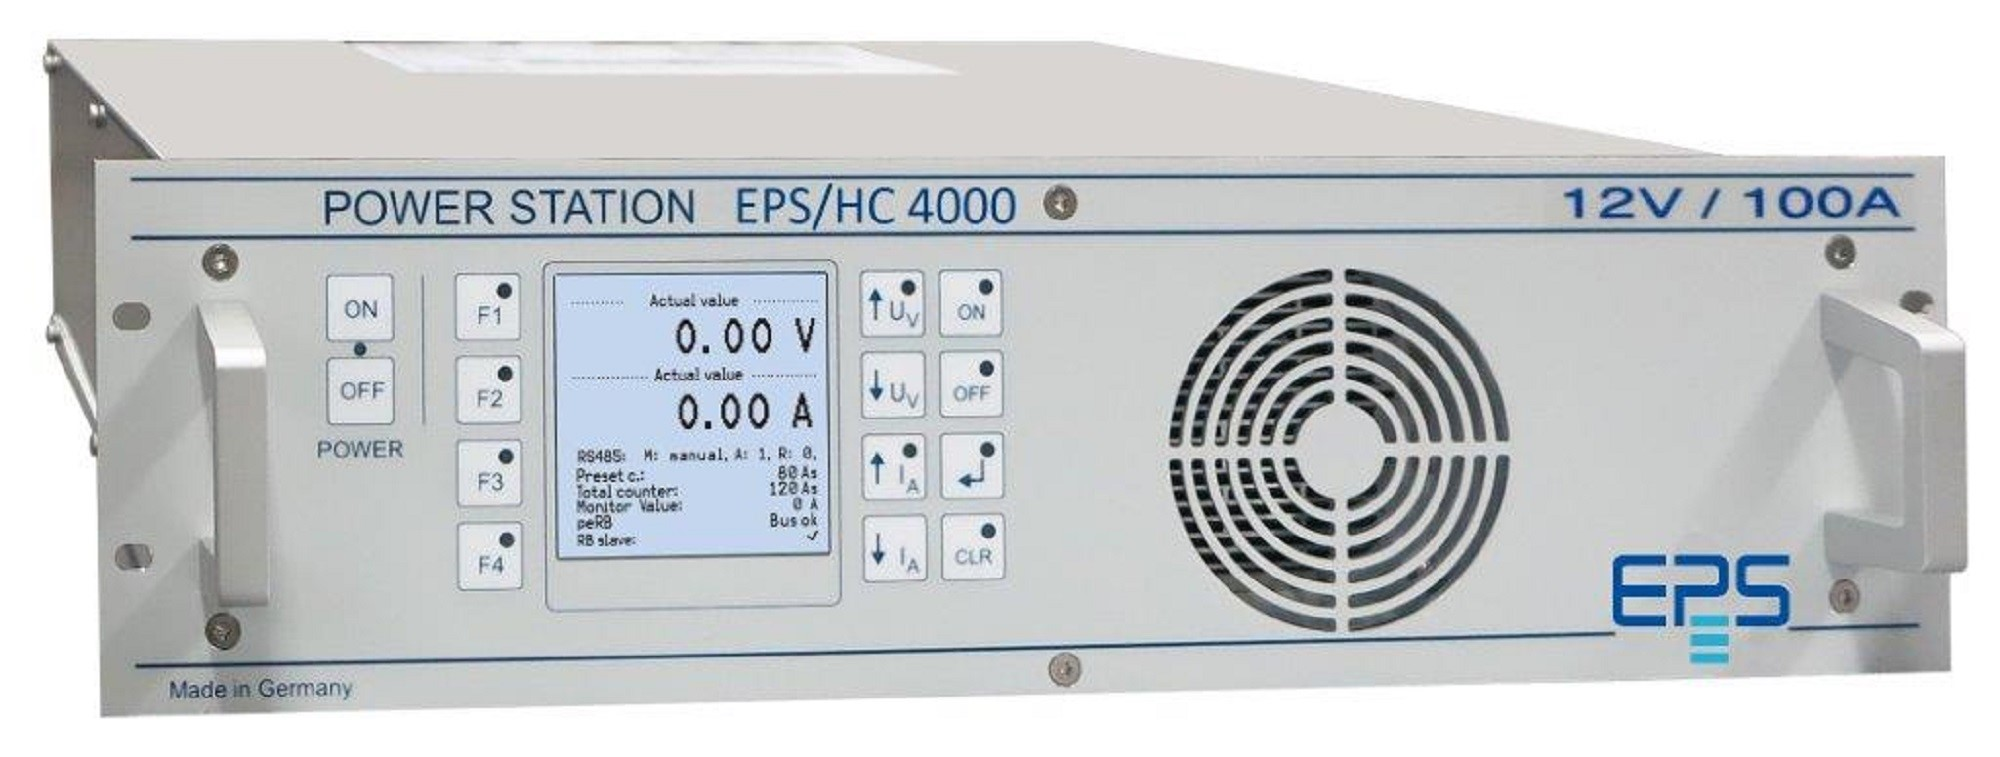 EPS/HC 4000 DC Current Source 1250 - 12000 W